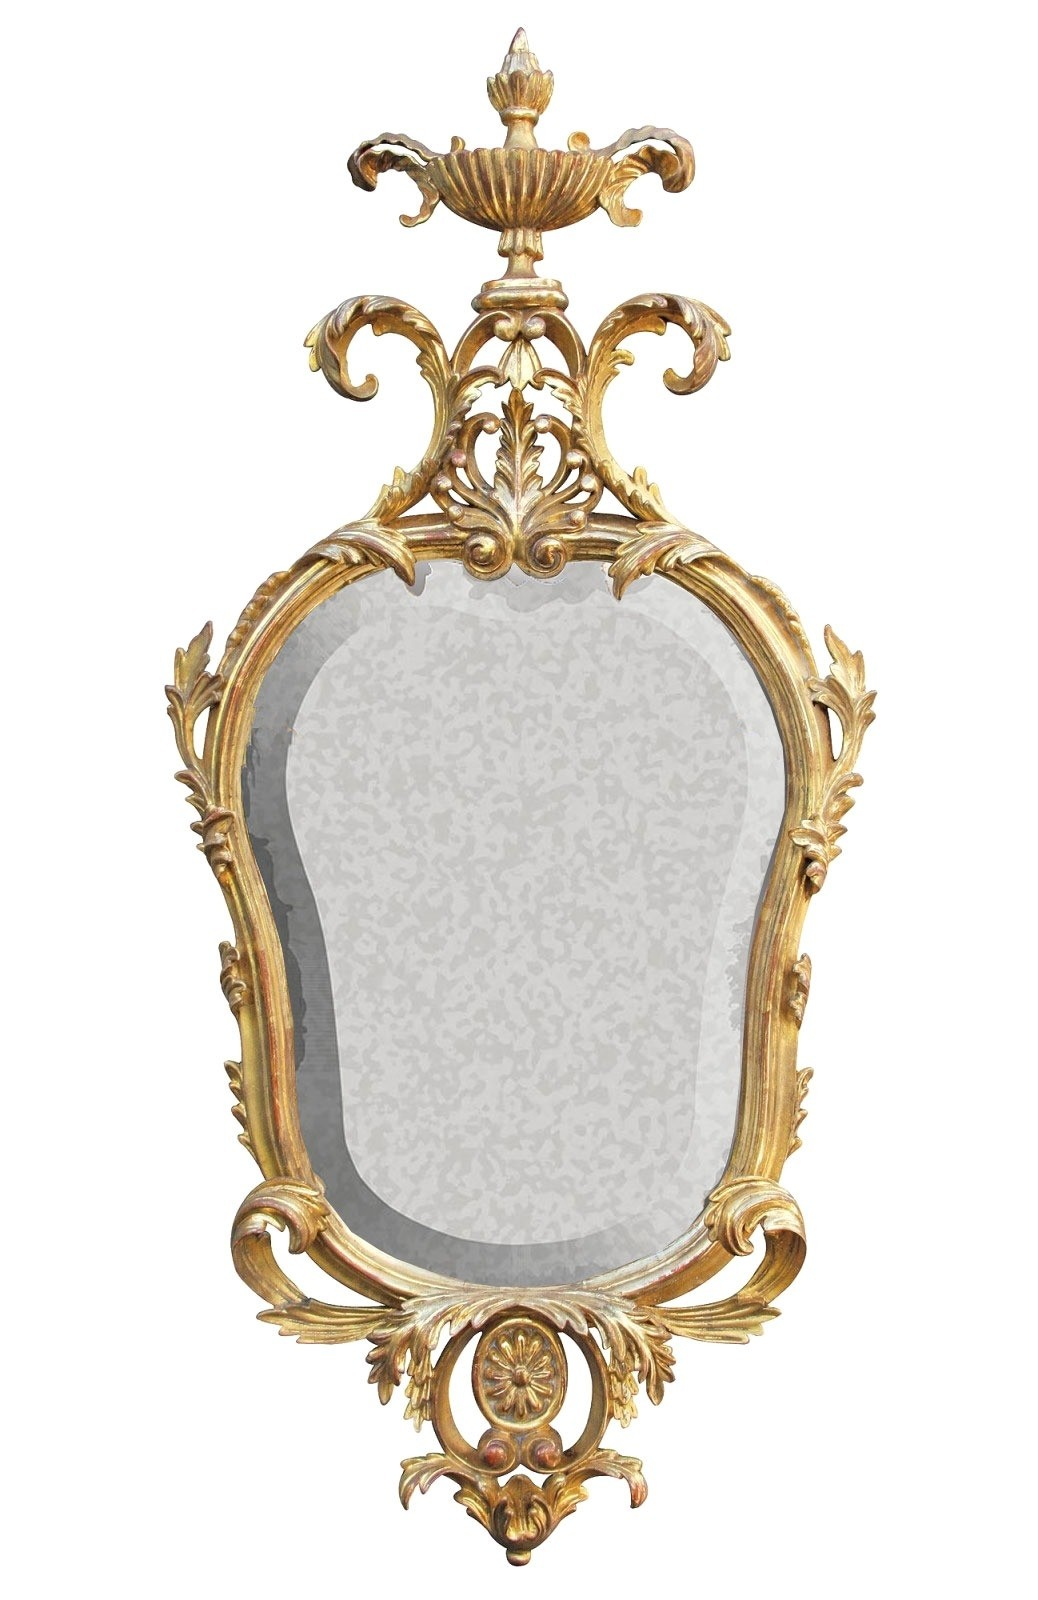 Water gilded period mirror with antiqued glass